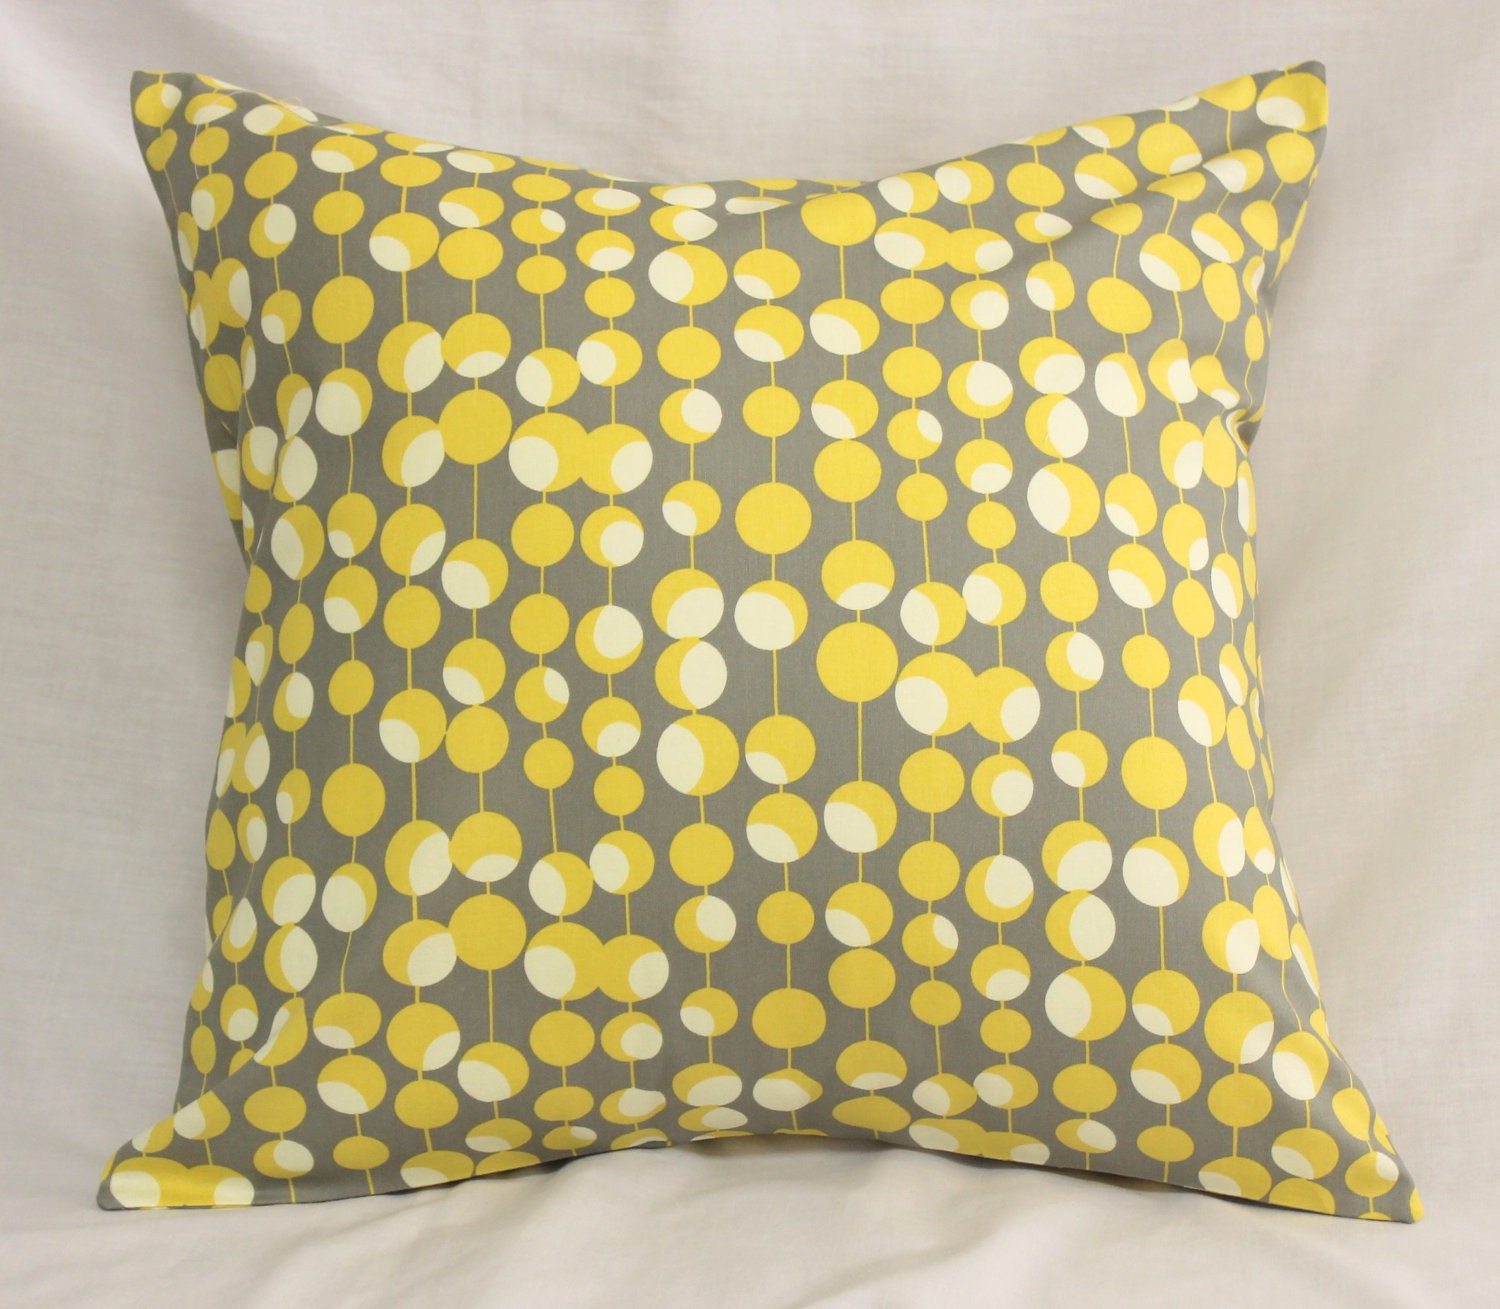 Decorative Pillow Covers Dijon Mustard Yellow & by SewGracious